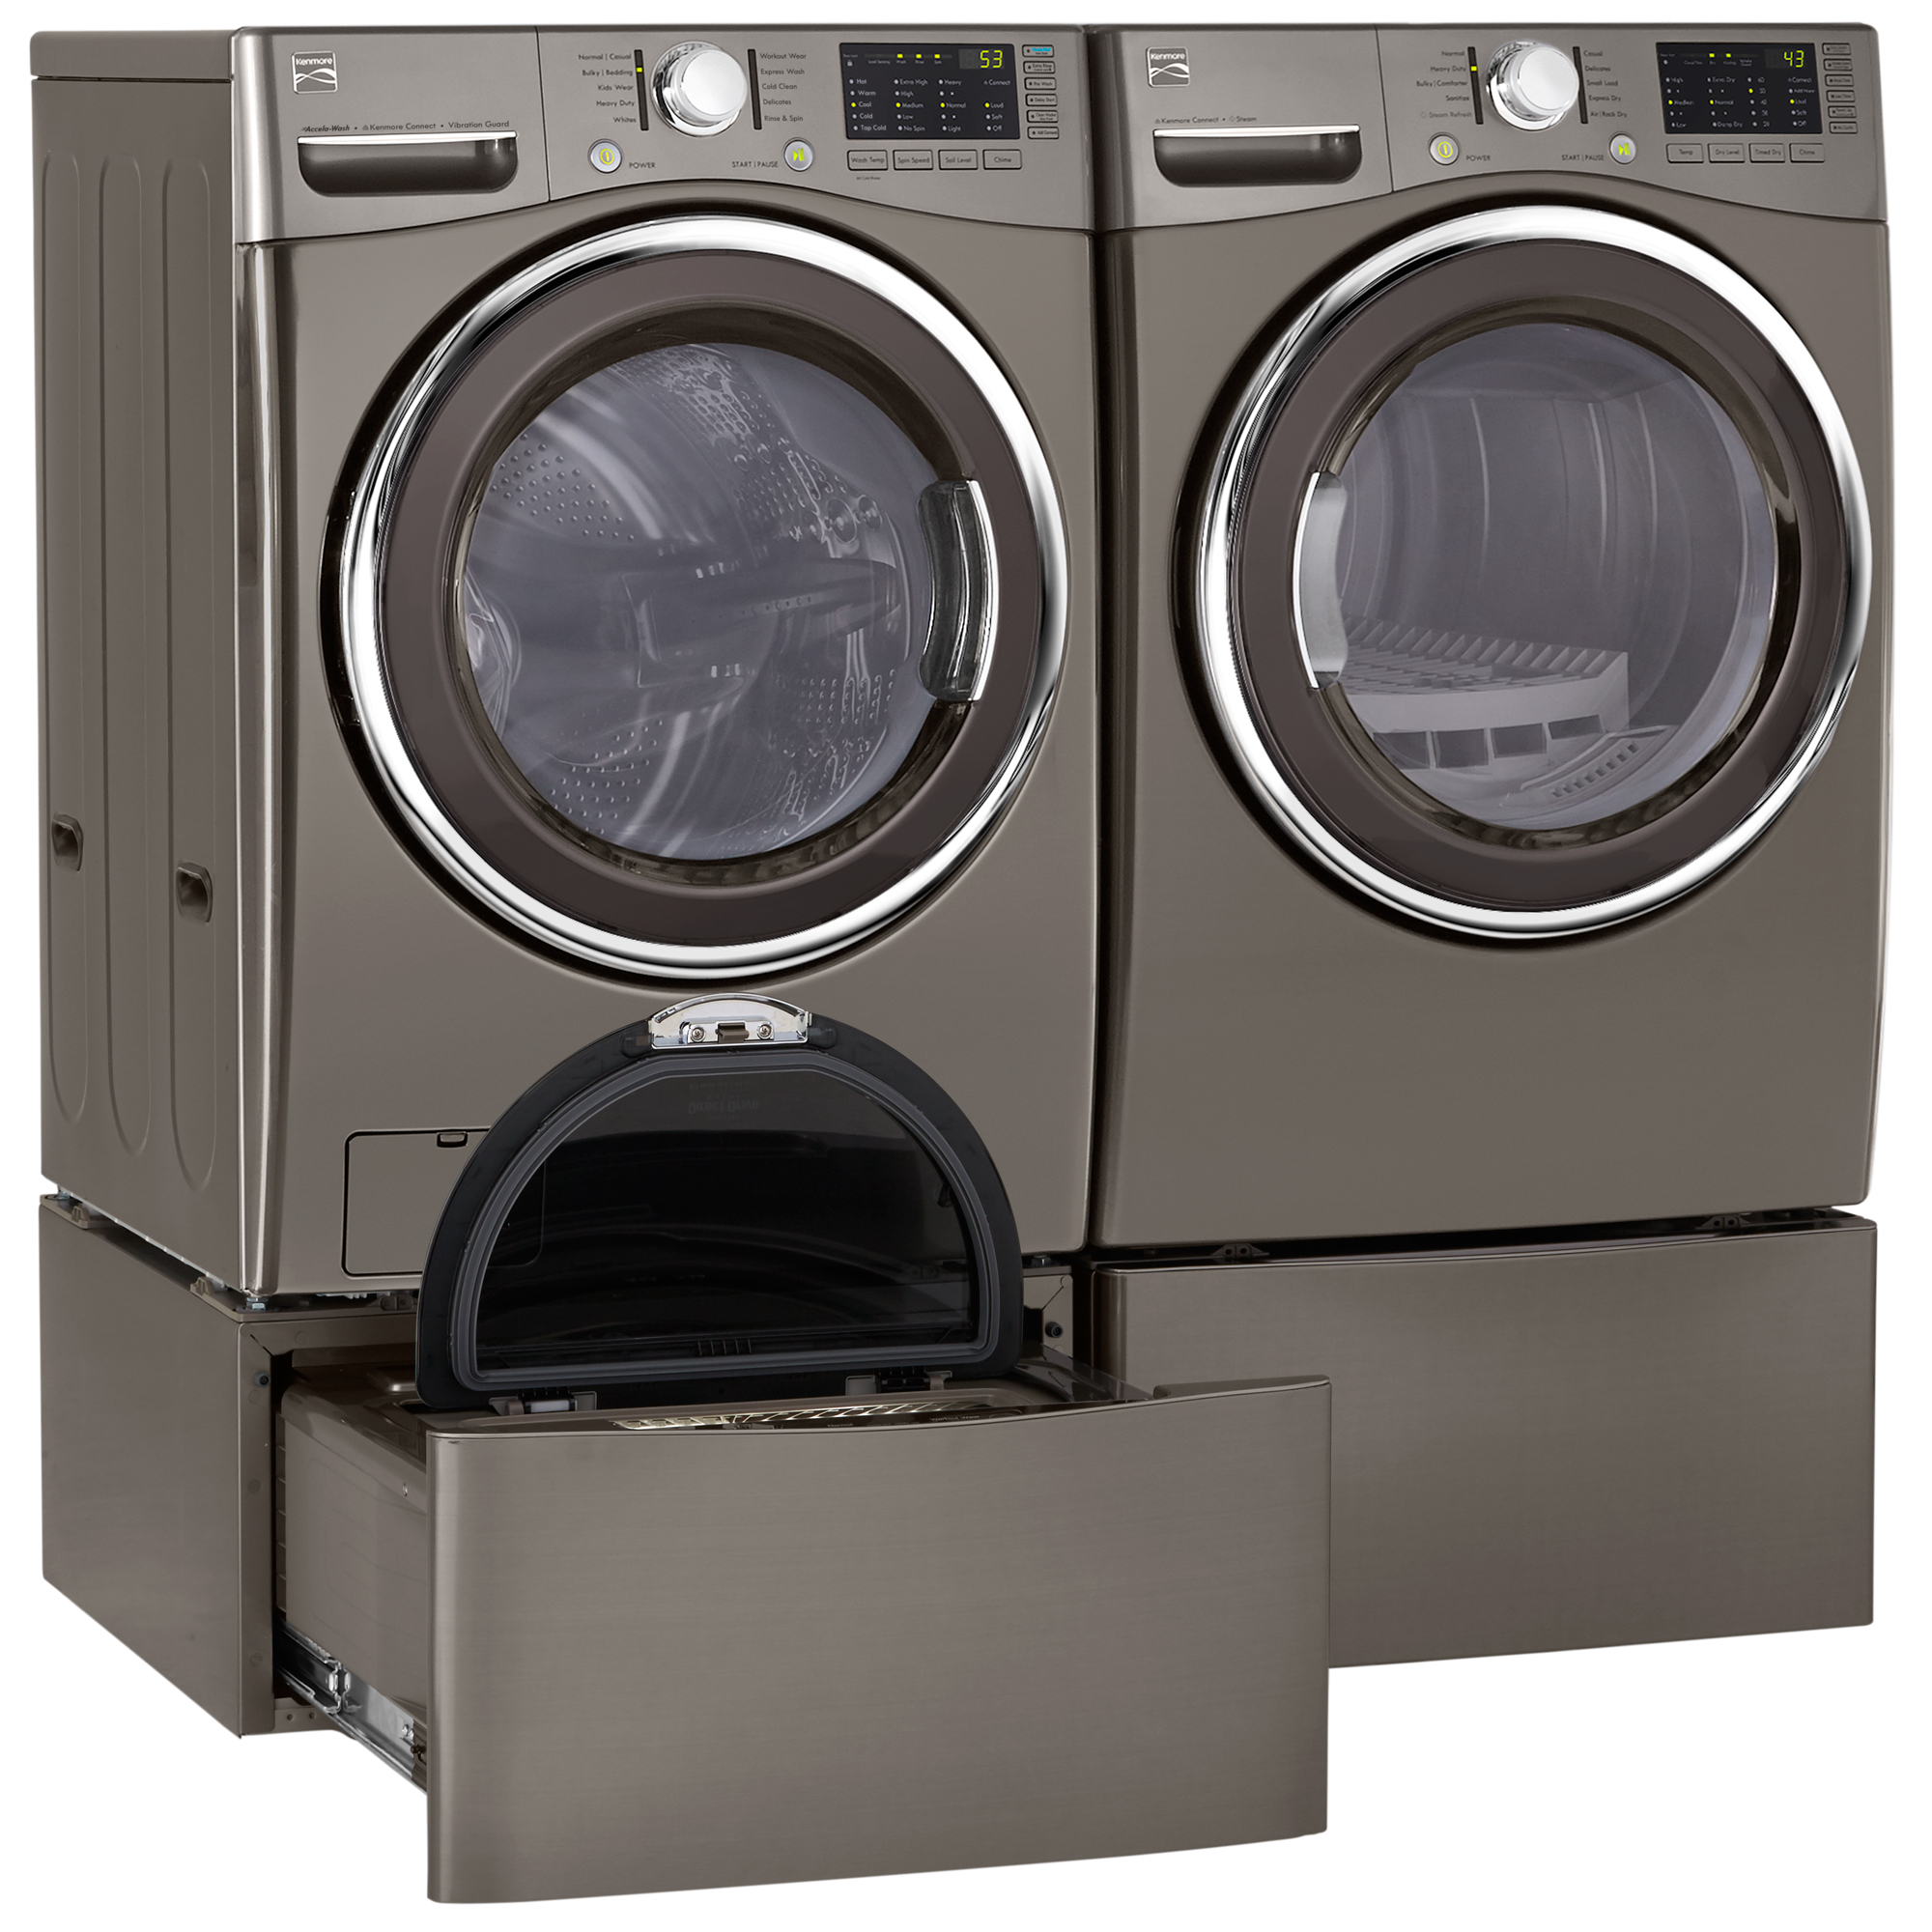 Kenmore 41393 4.5 cu. ft. Front-Load Washer w/Accela Wash® - Metallic Silver